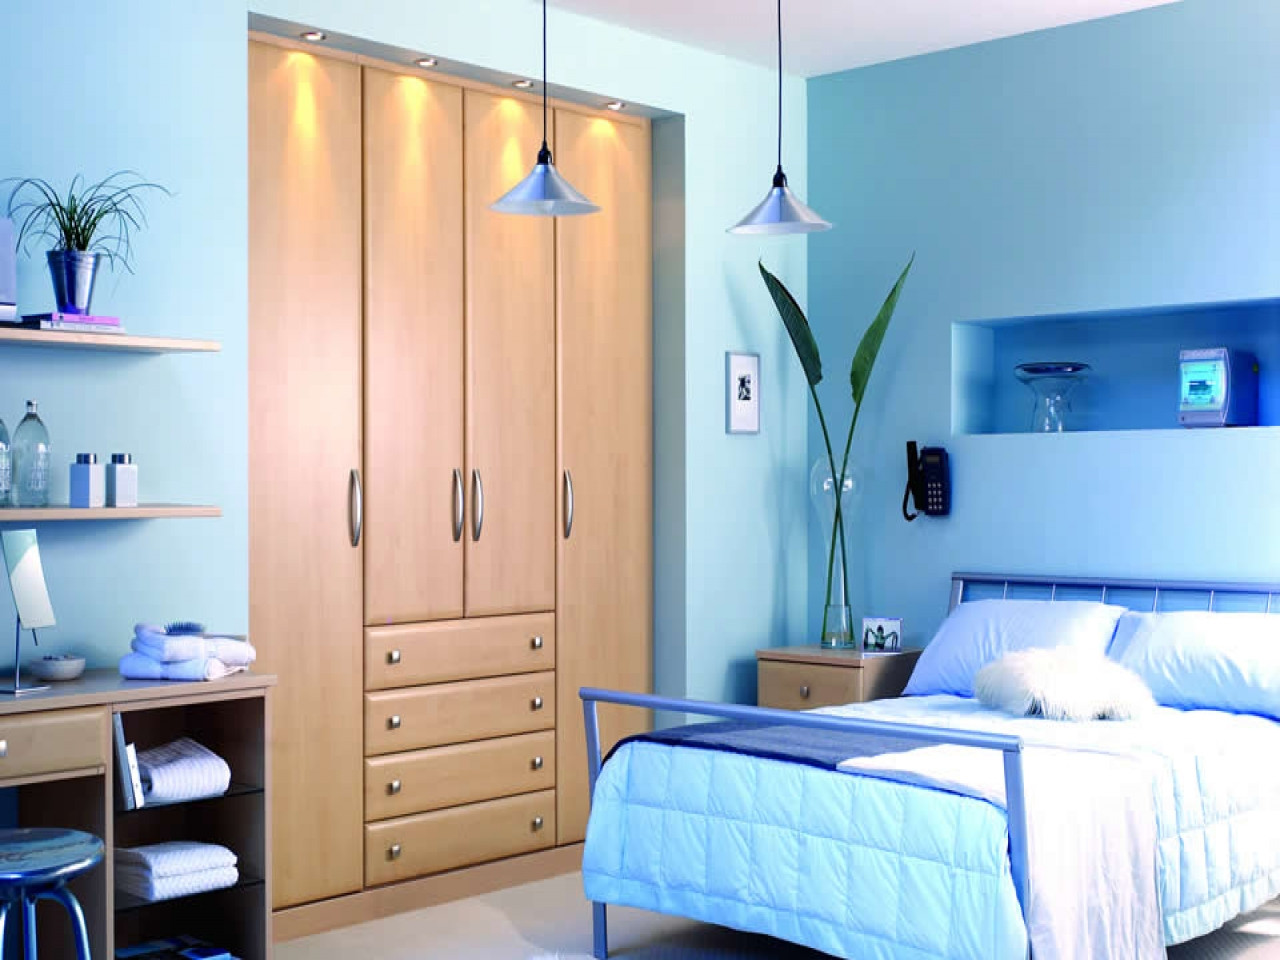 Best ideas about Wall Paint Colors . Save or Pin 10 benefits of Light blue wall paint colors Now.